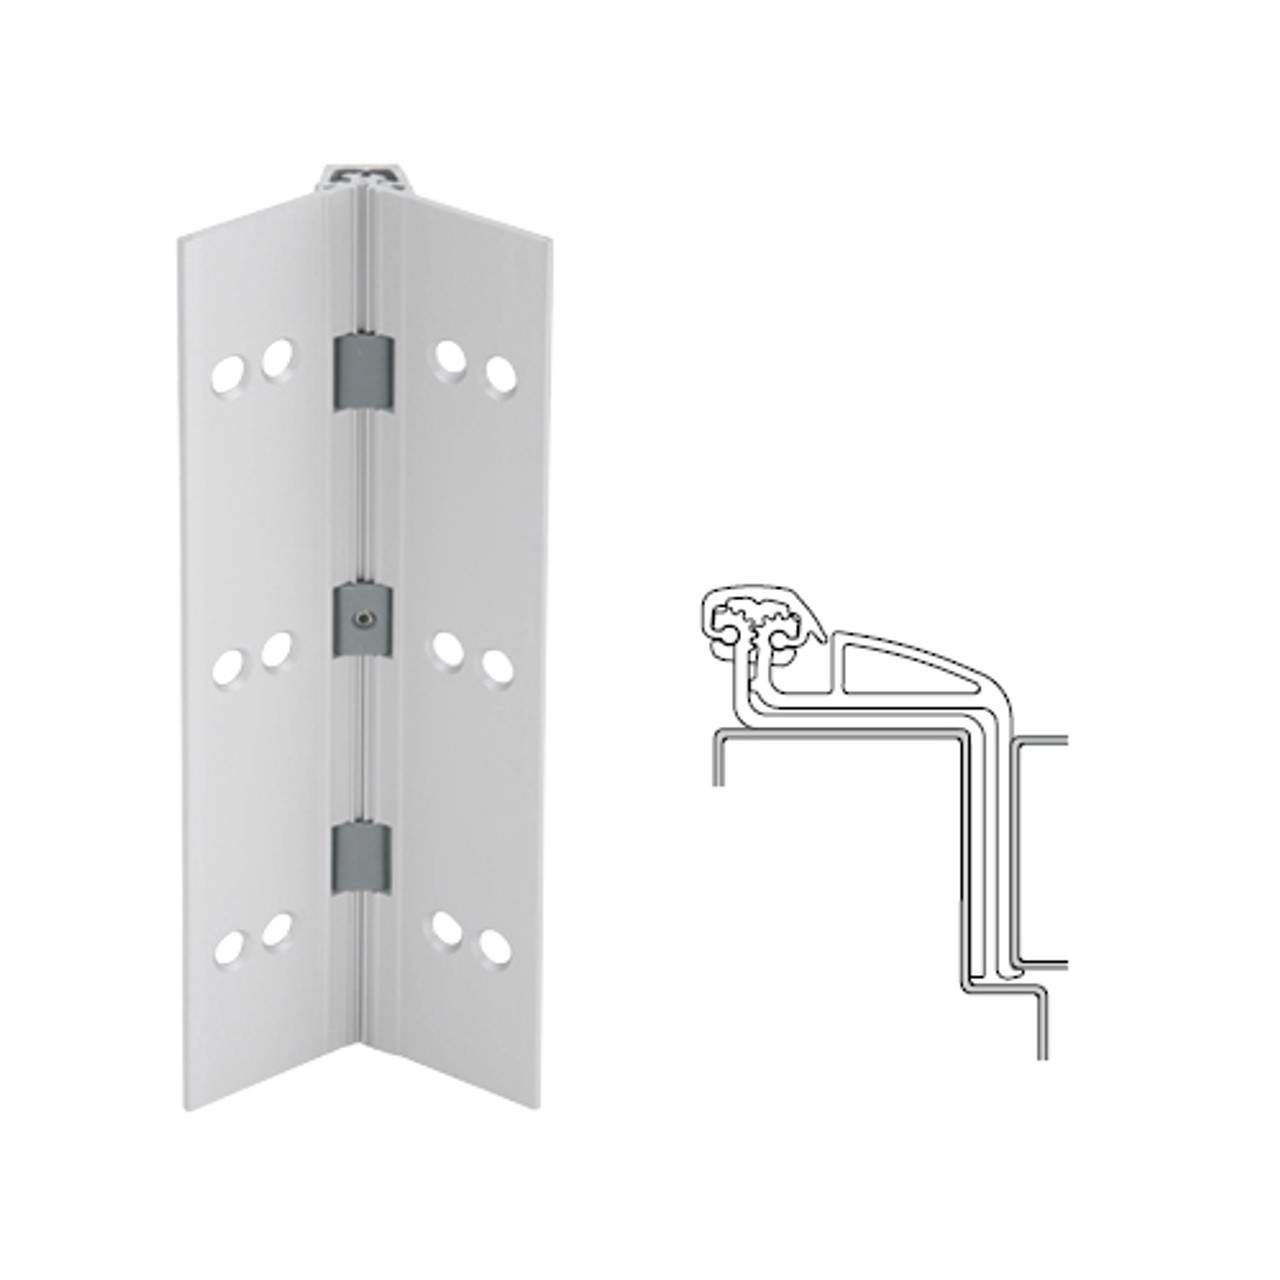 041XY-US28-120-SECWDWD IVES Full Mortise Continuous Geared Hinges with Security Screws - Hex Pin Drive in Satin Aluminum